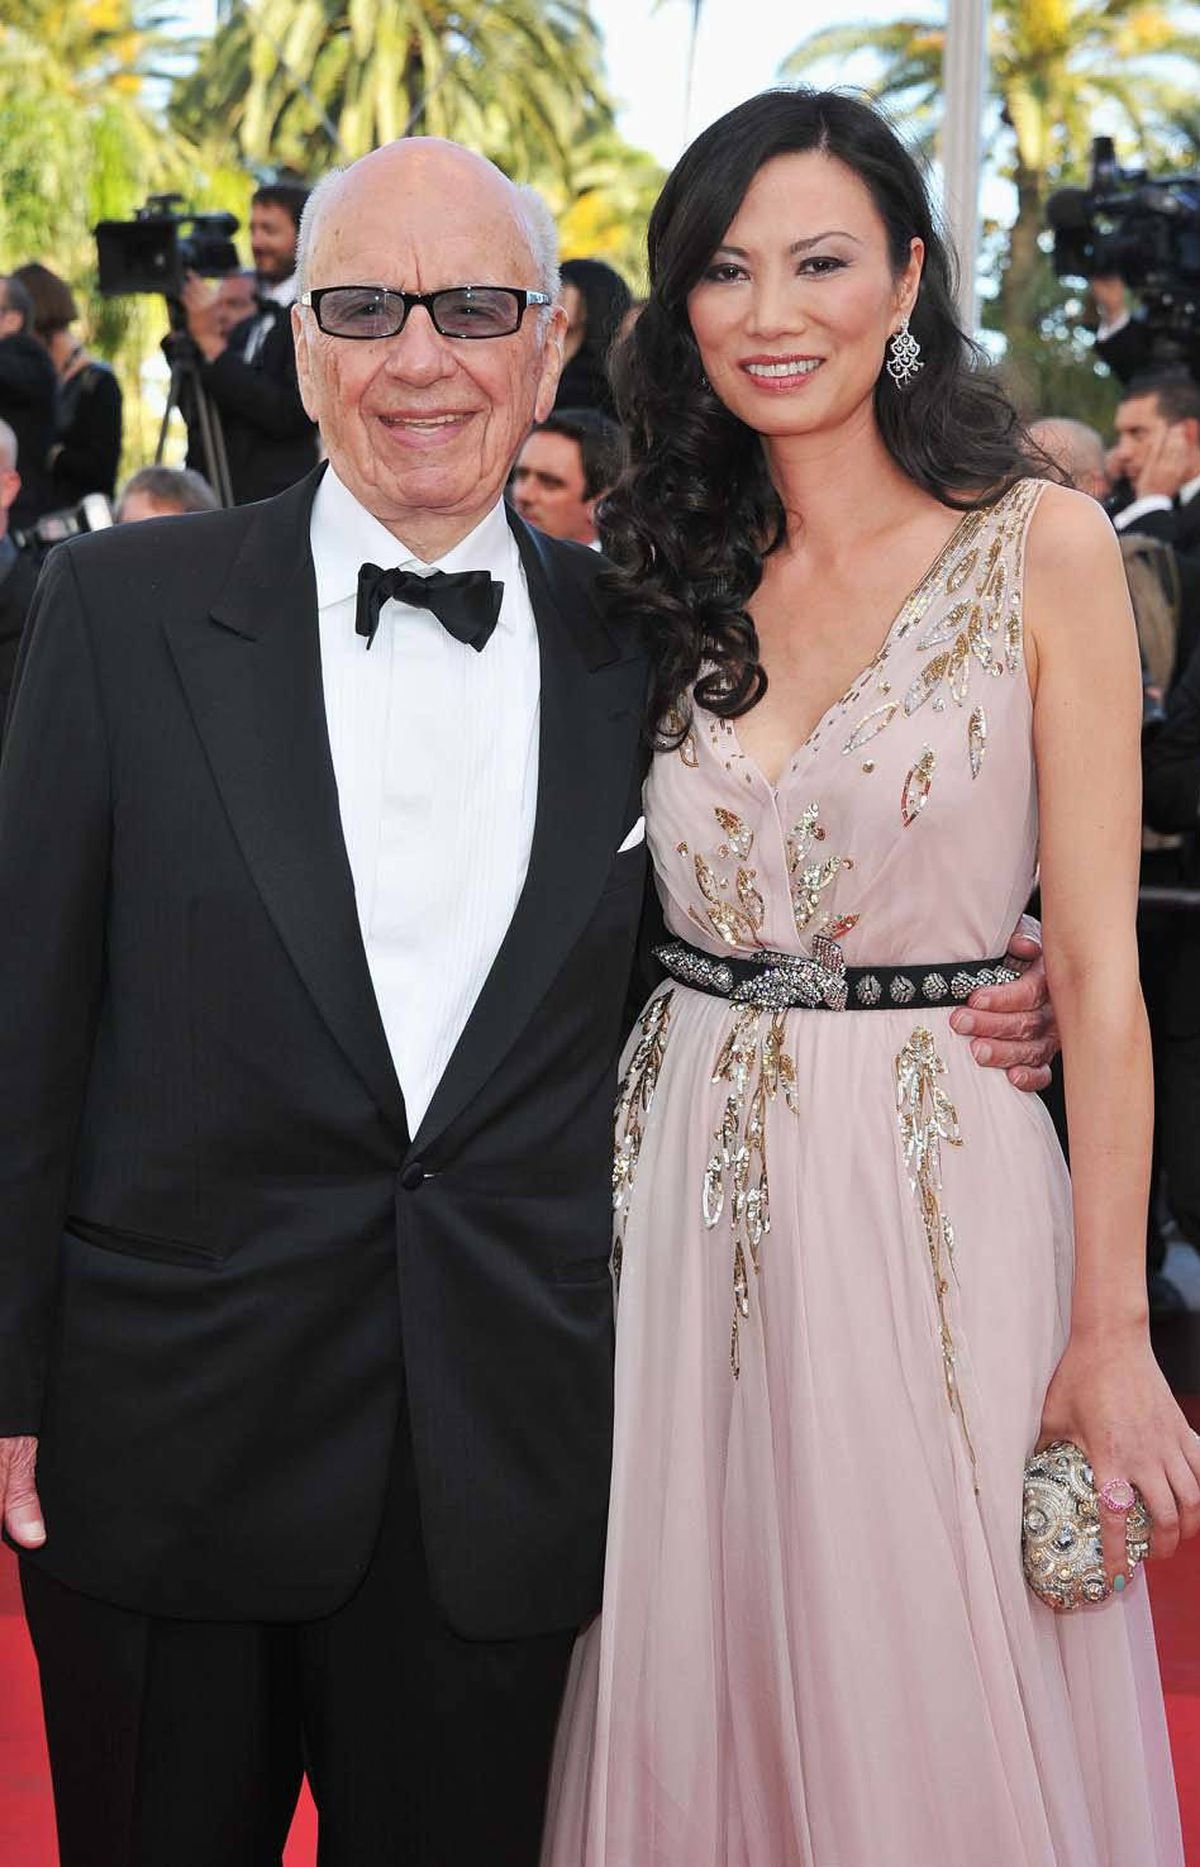 """Rupert Murdoch and wife Wendi attend """"The Tree Of Life"""" premiere at the Cannes Film Festival on Monday."""